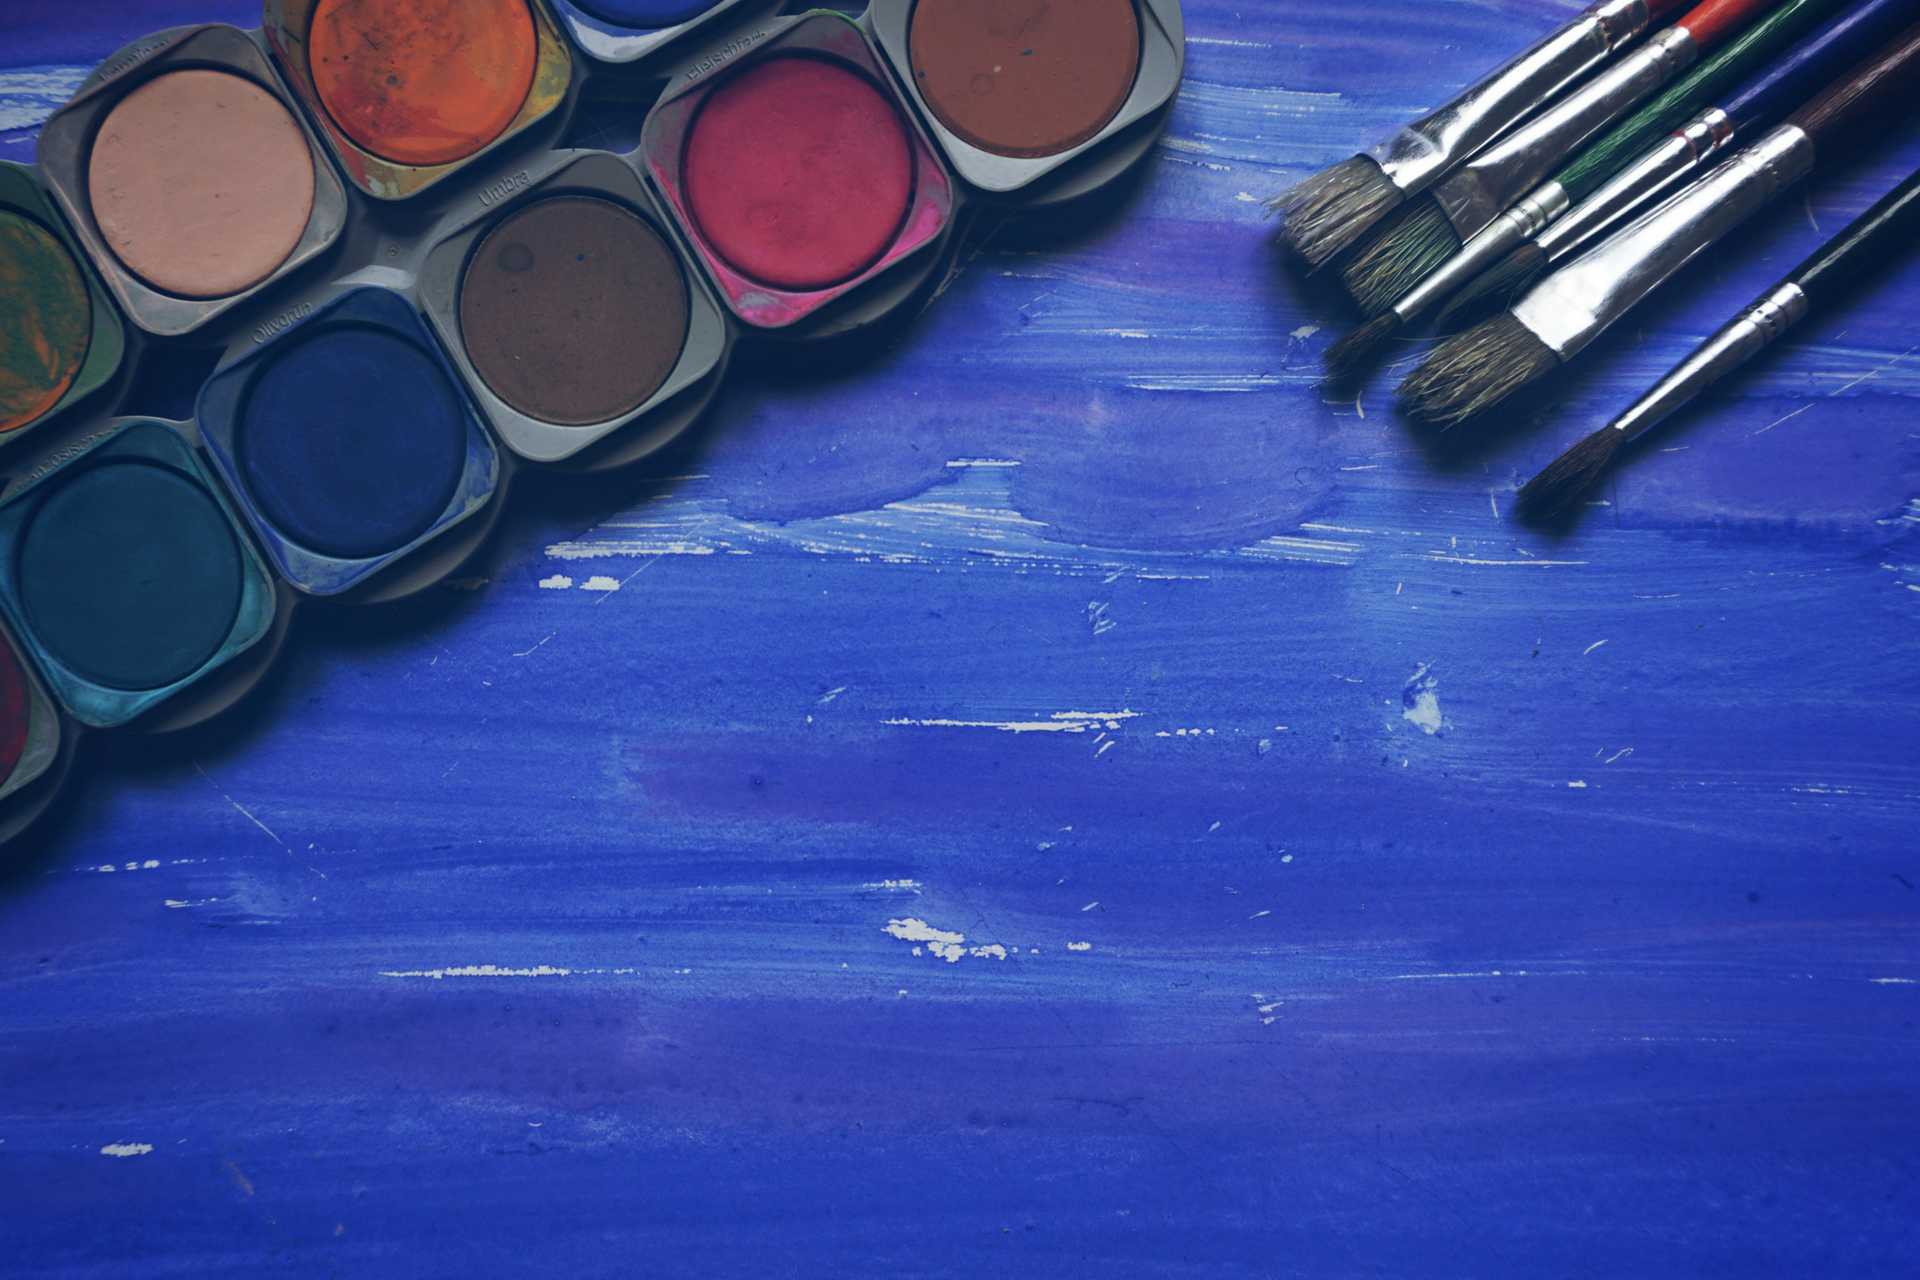 A photo of a paint set and paintbrushes atop a blue table.